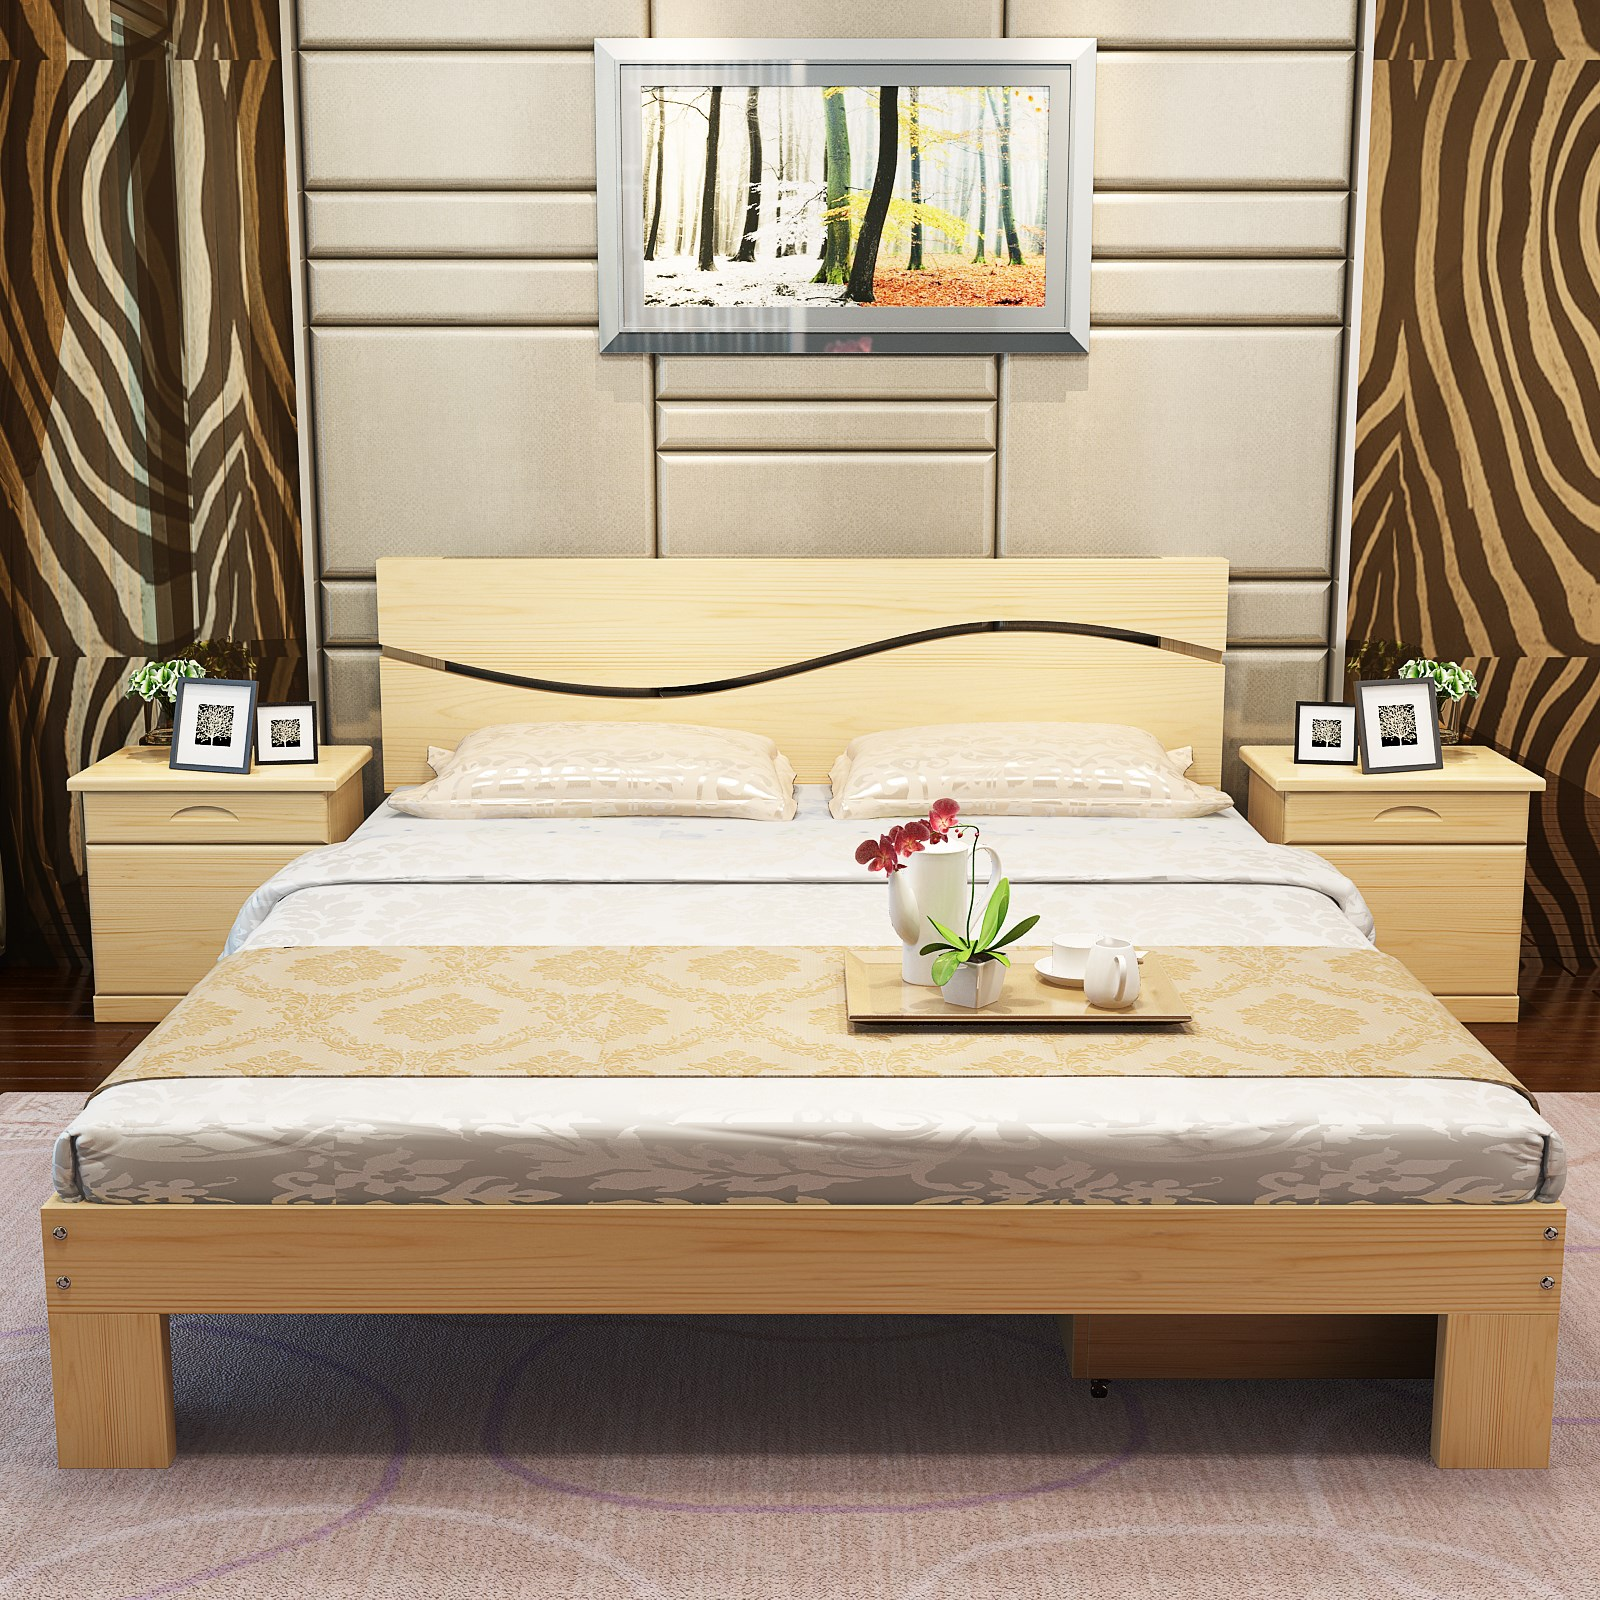 Shipping wood bed 1.5 meters 1.2 meters 1.8 meters double bed single bed pine adult children bed bed bed meters